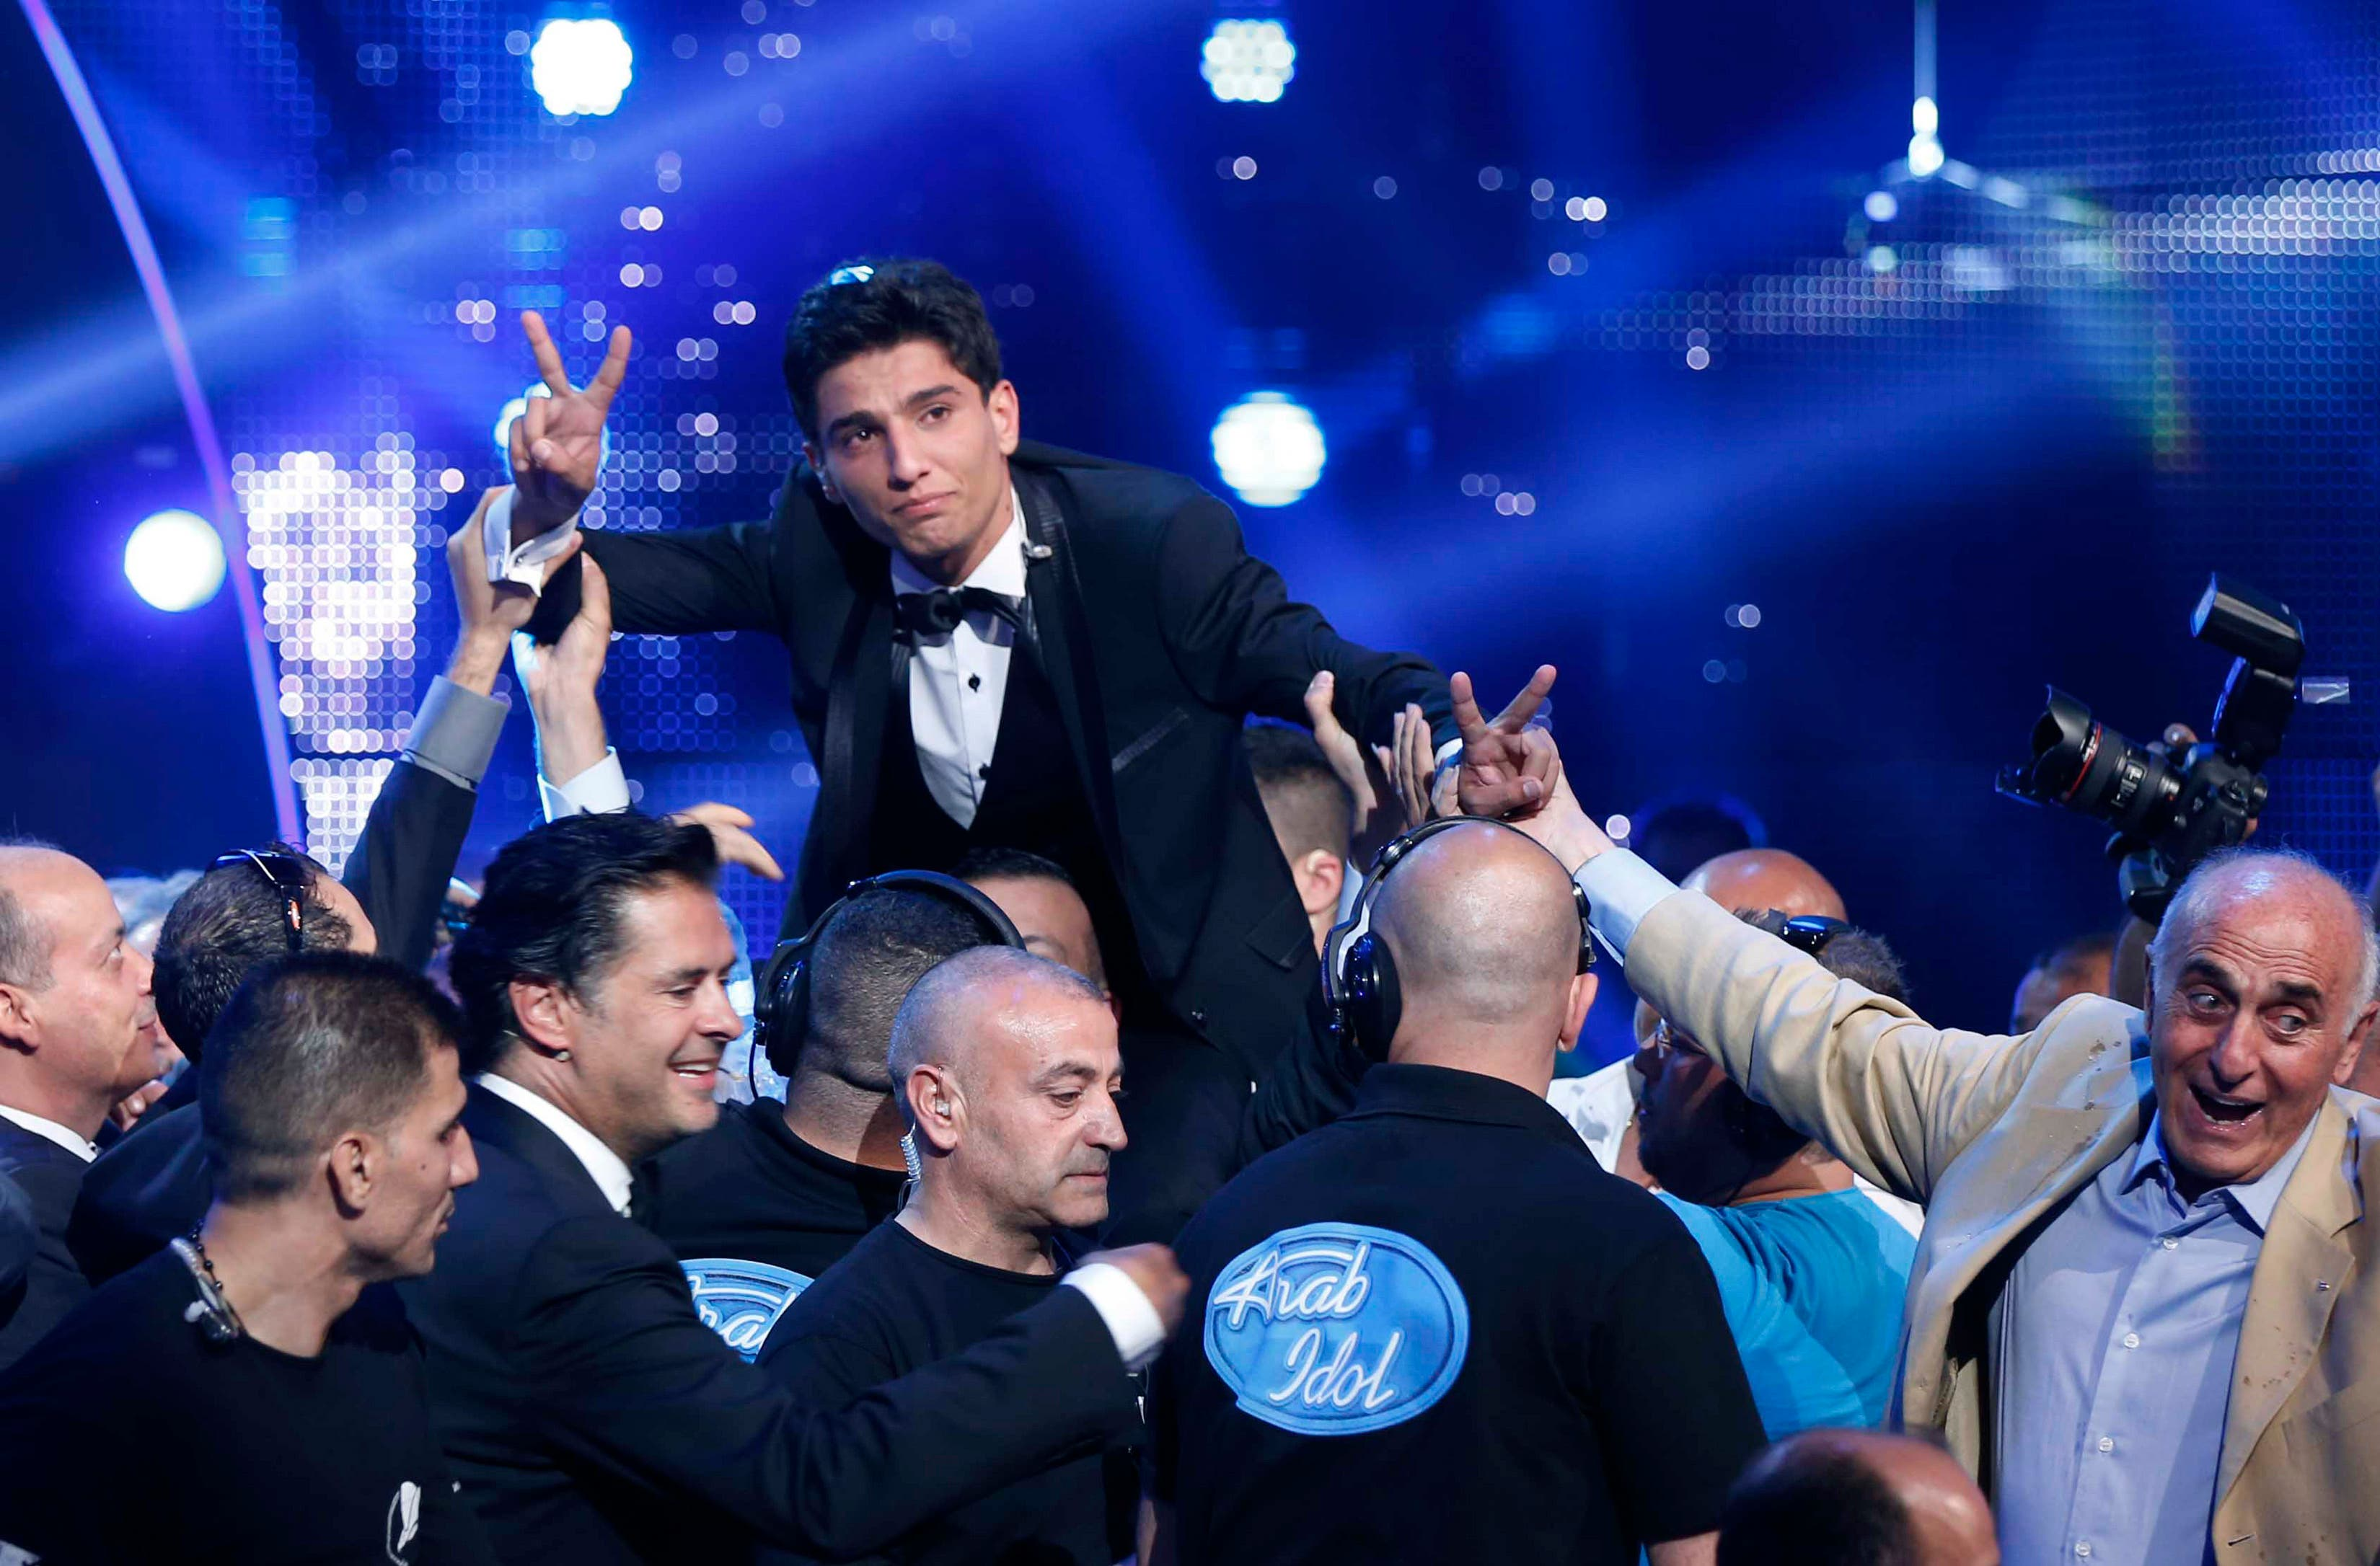 Almost 411,000 UAE residents tuned in to watch Palestinian singer Mohammed Assaf win the season two finale of Arab Idol. (File photo: Reuters)